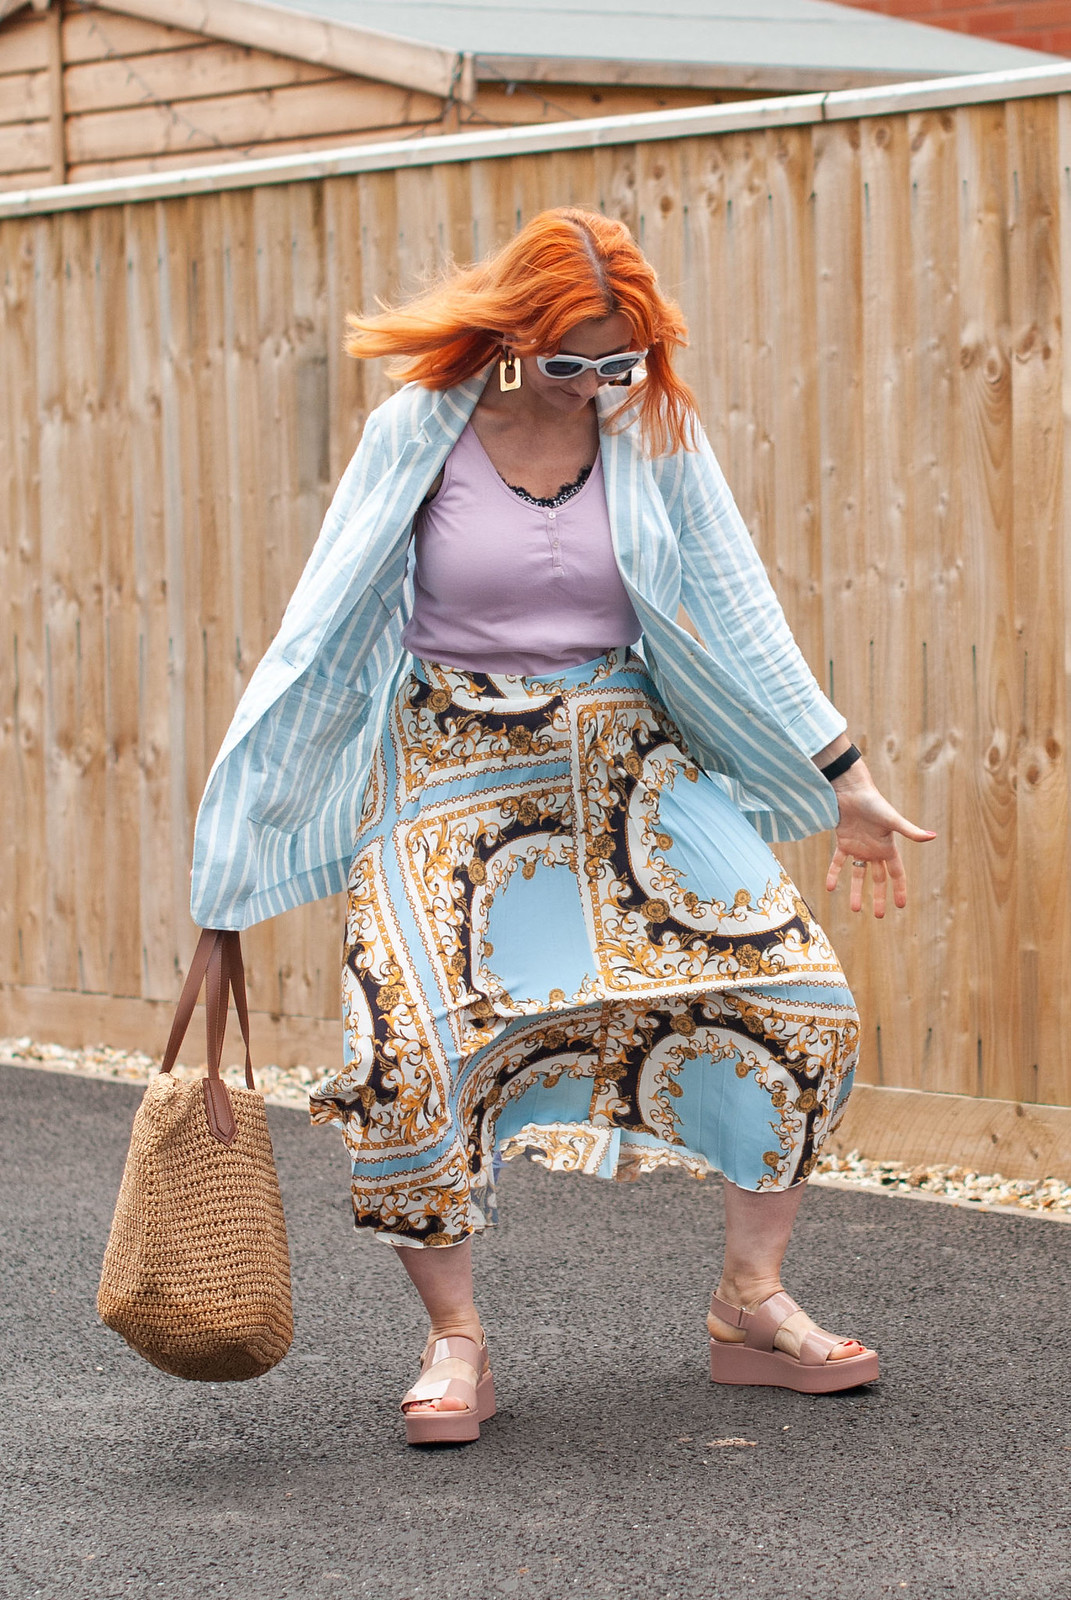 Not Dressed As Lamb Fashion Blogger Bloopers & Outtakes 2019 | The one where I clearly showed the wind's effect on my skirt